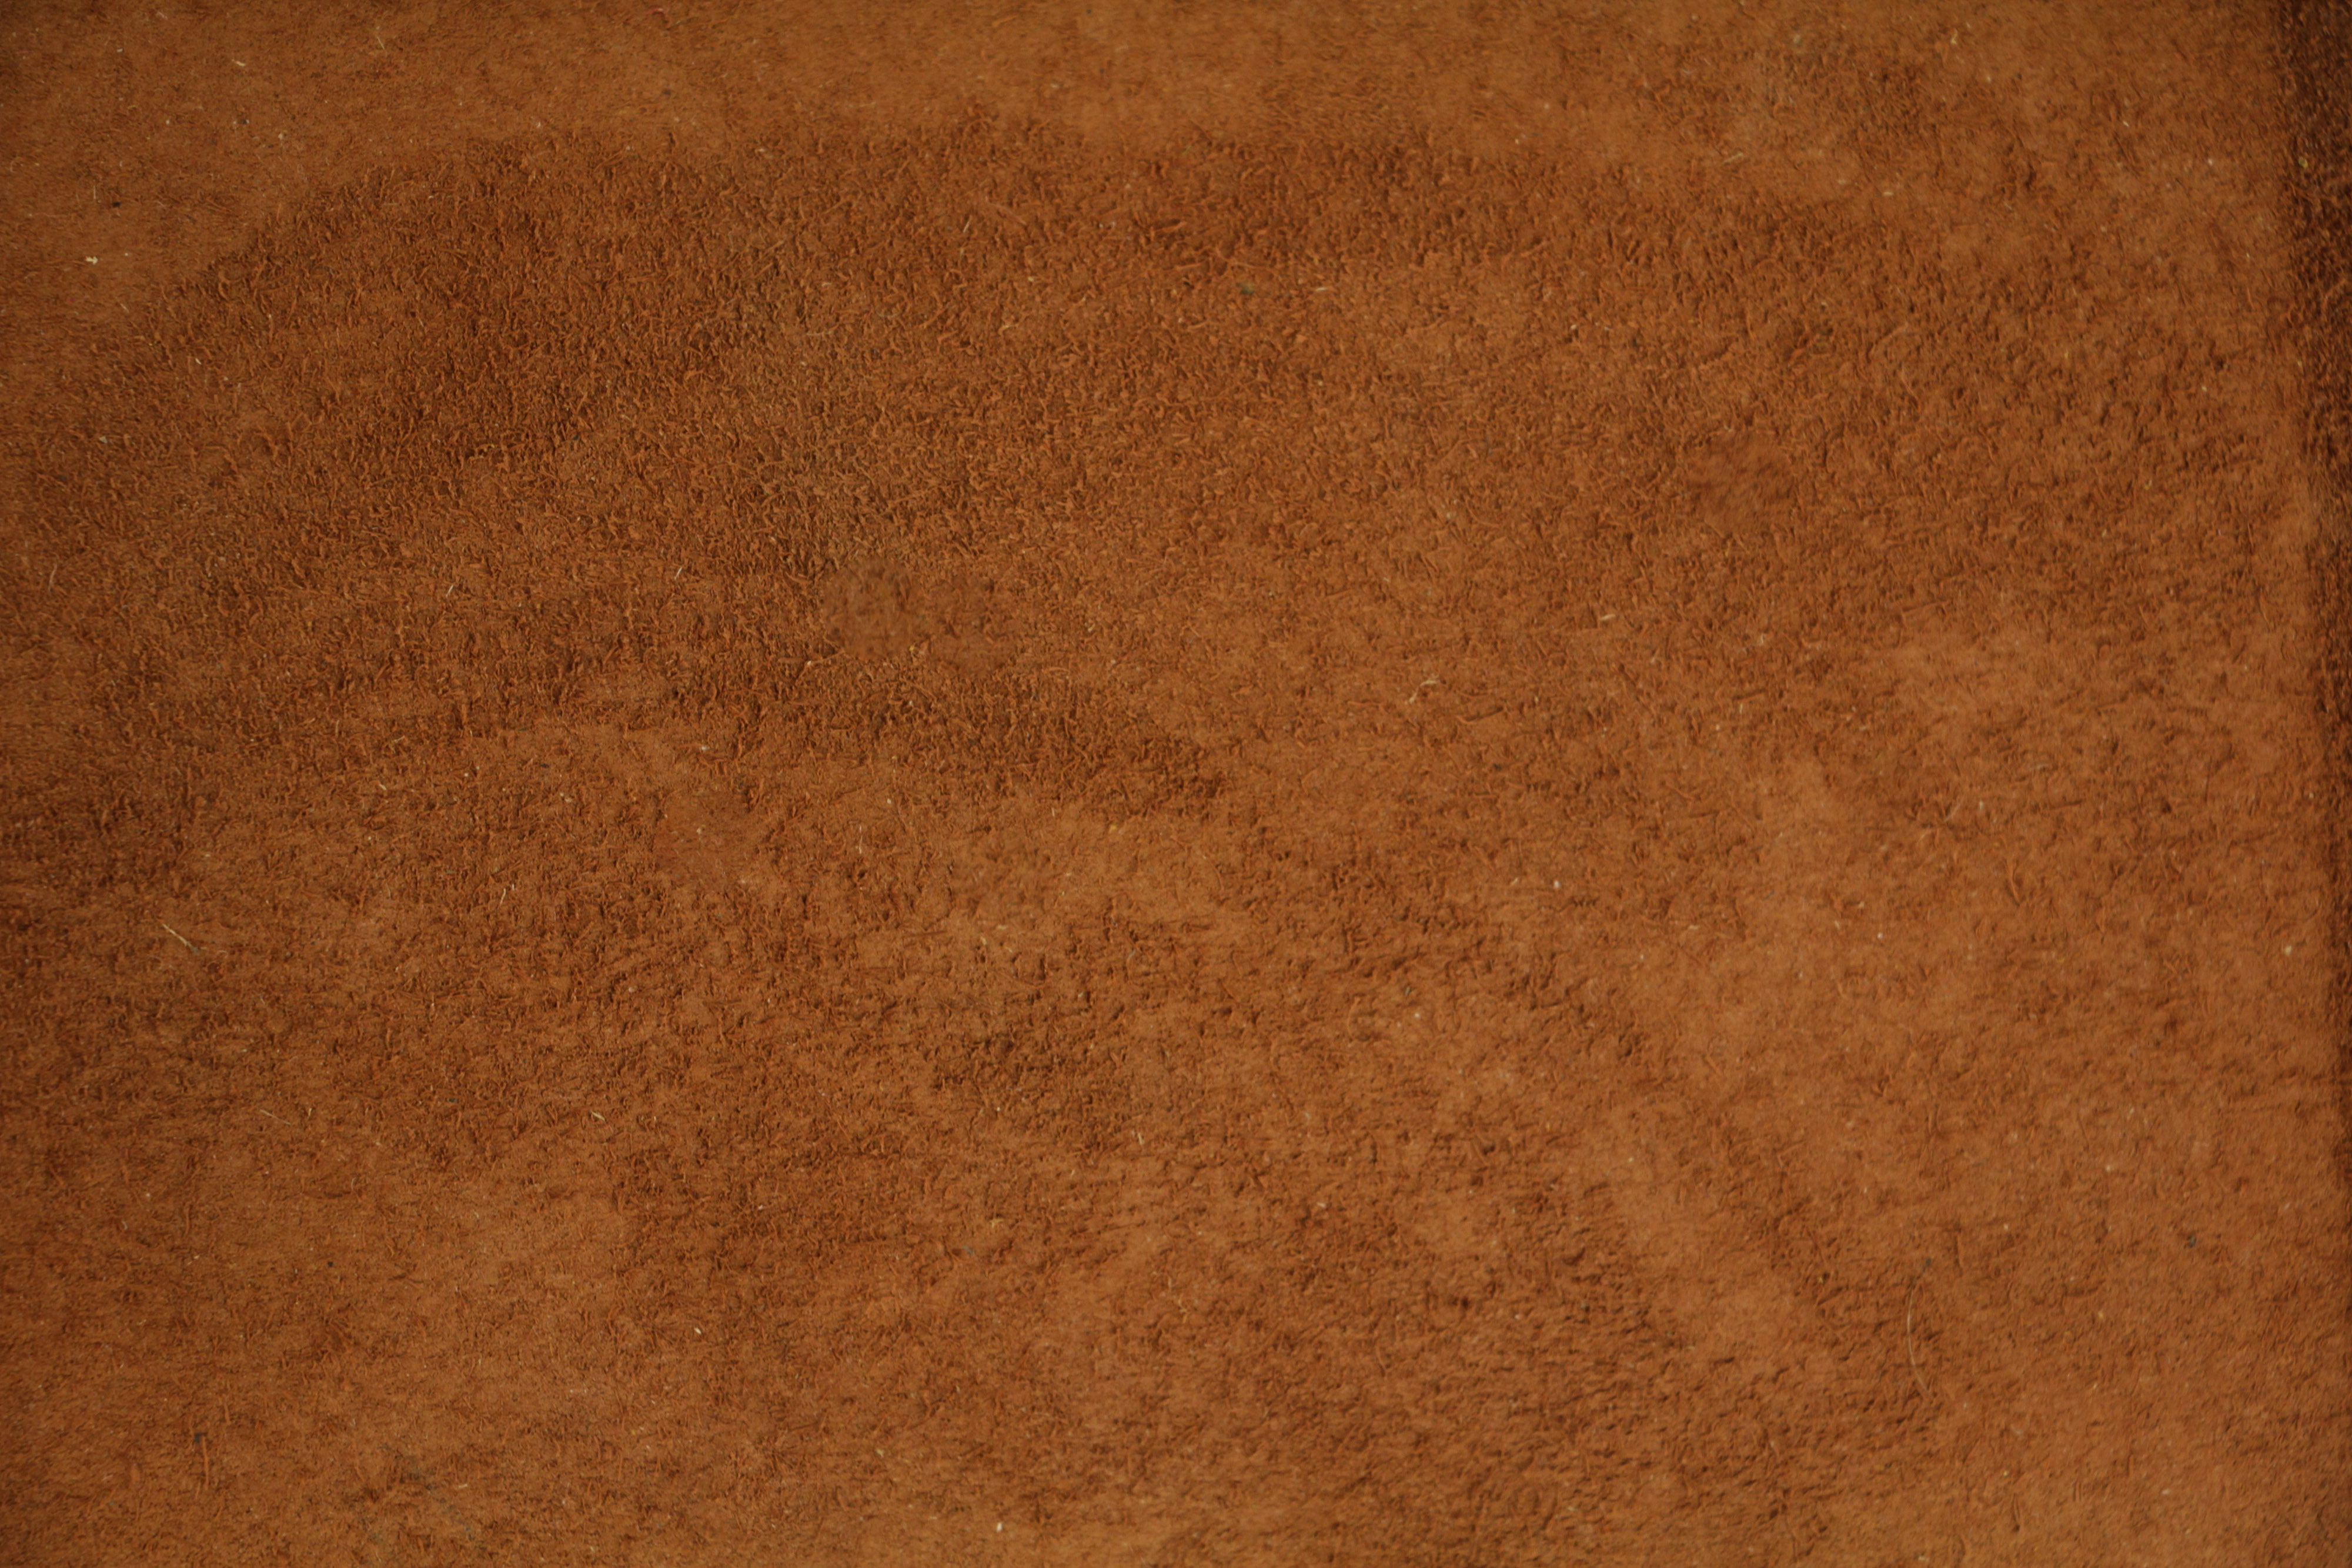 tan fabric sofa bunk beds bottom leather textures archives - texturex- free and premium ...